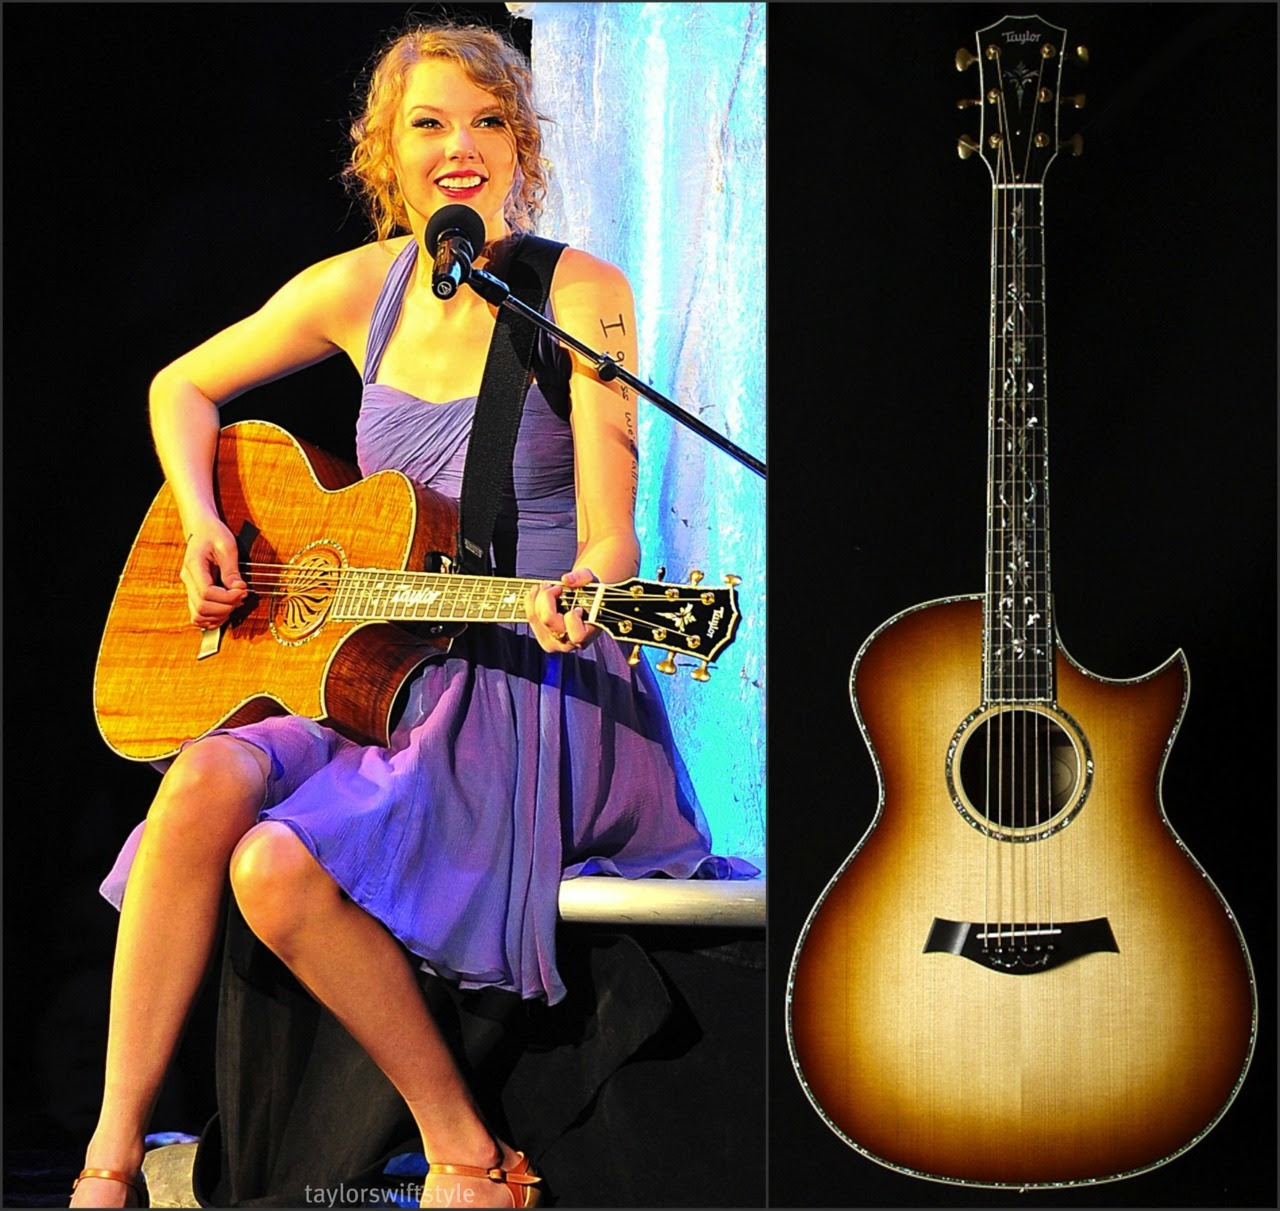 Miniature Acoustic Guitar Taylor Swift - OZMiniGuitar |Taylor Swifts Acoustic Guitar